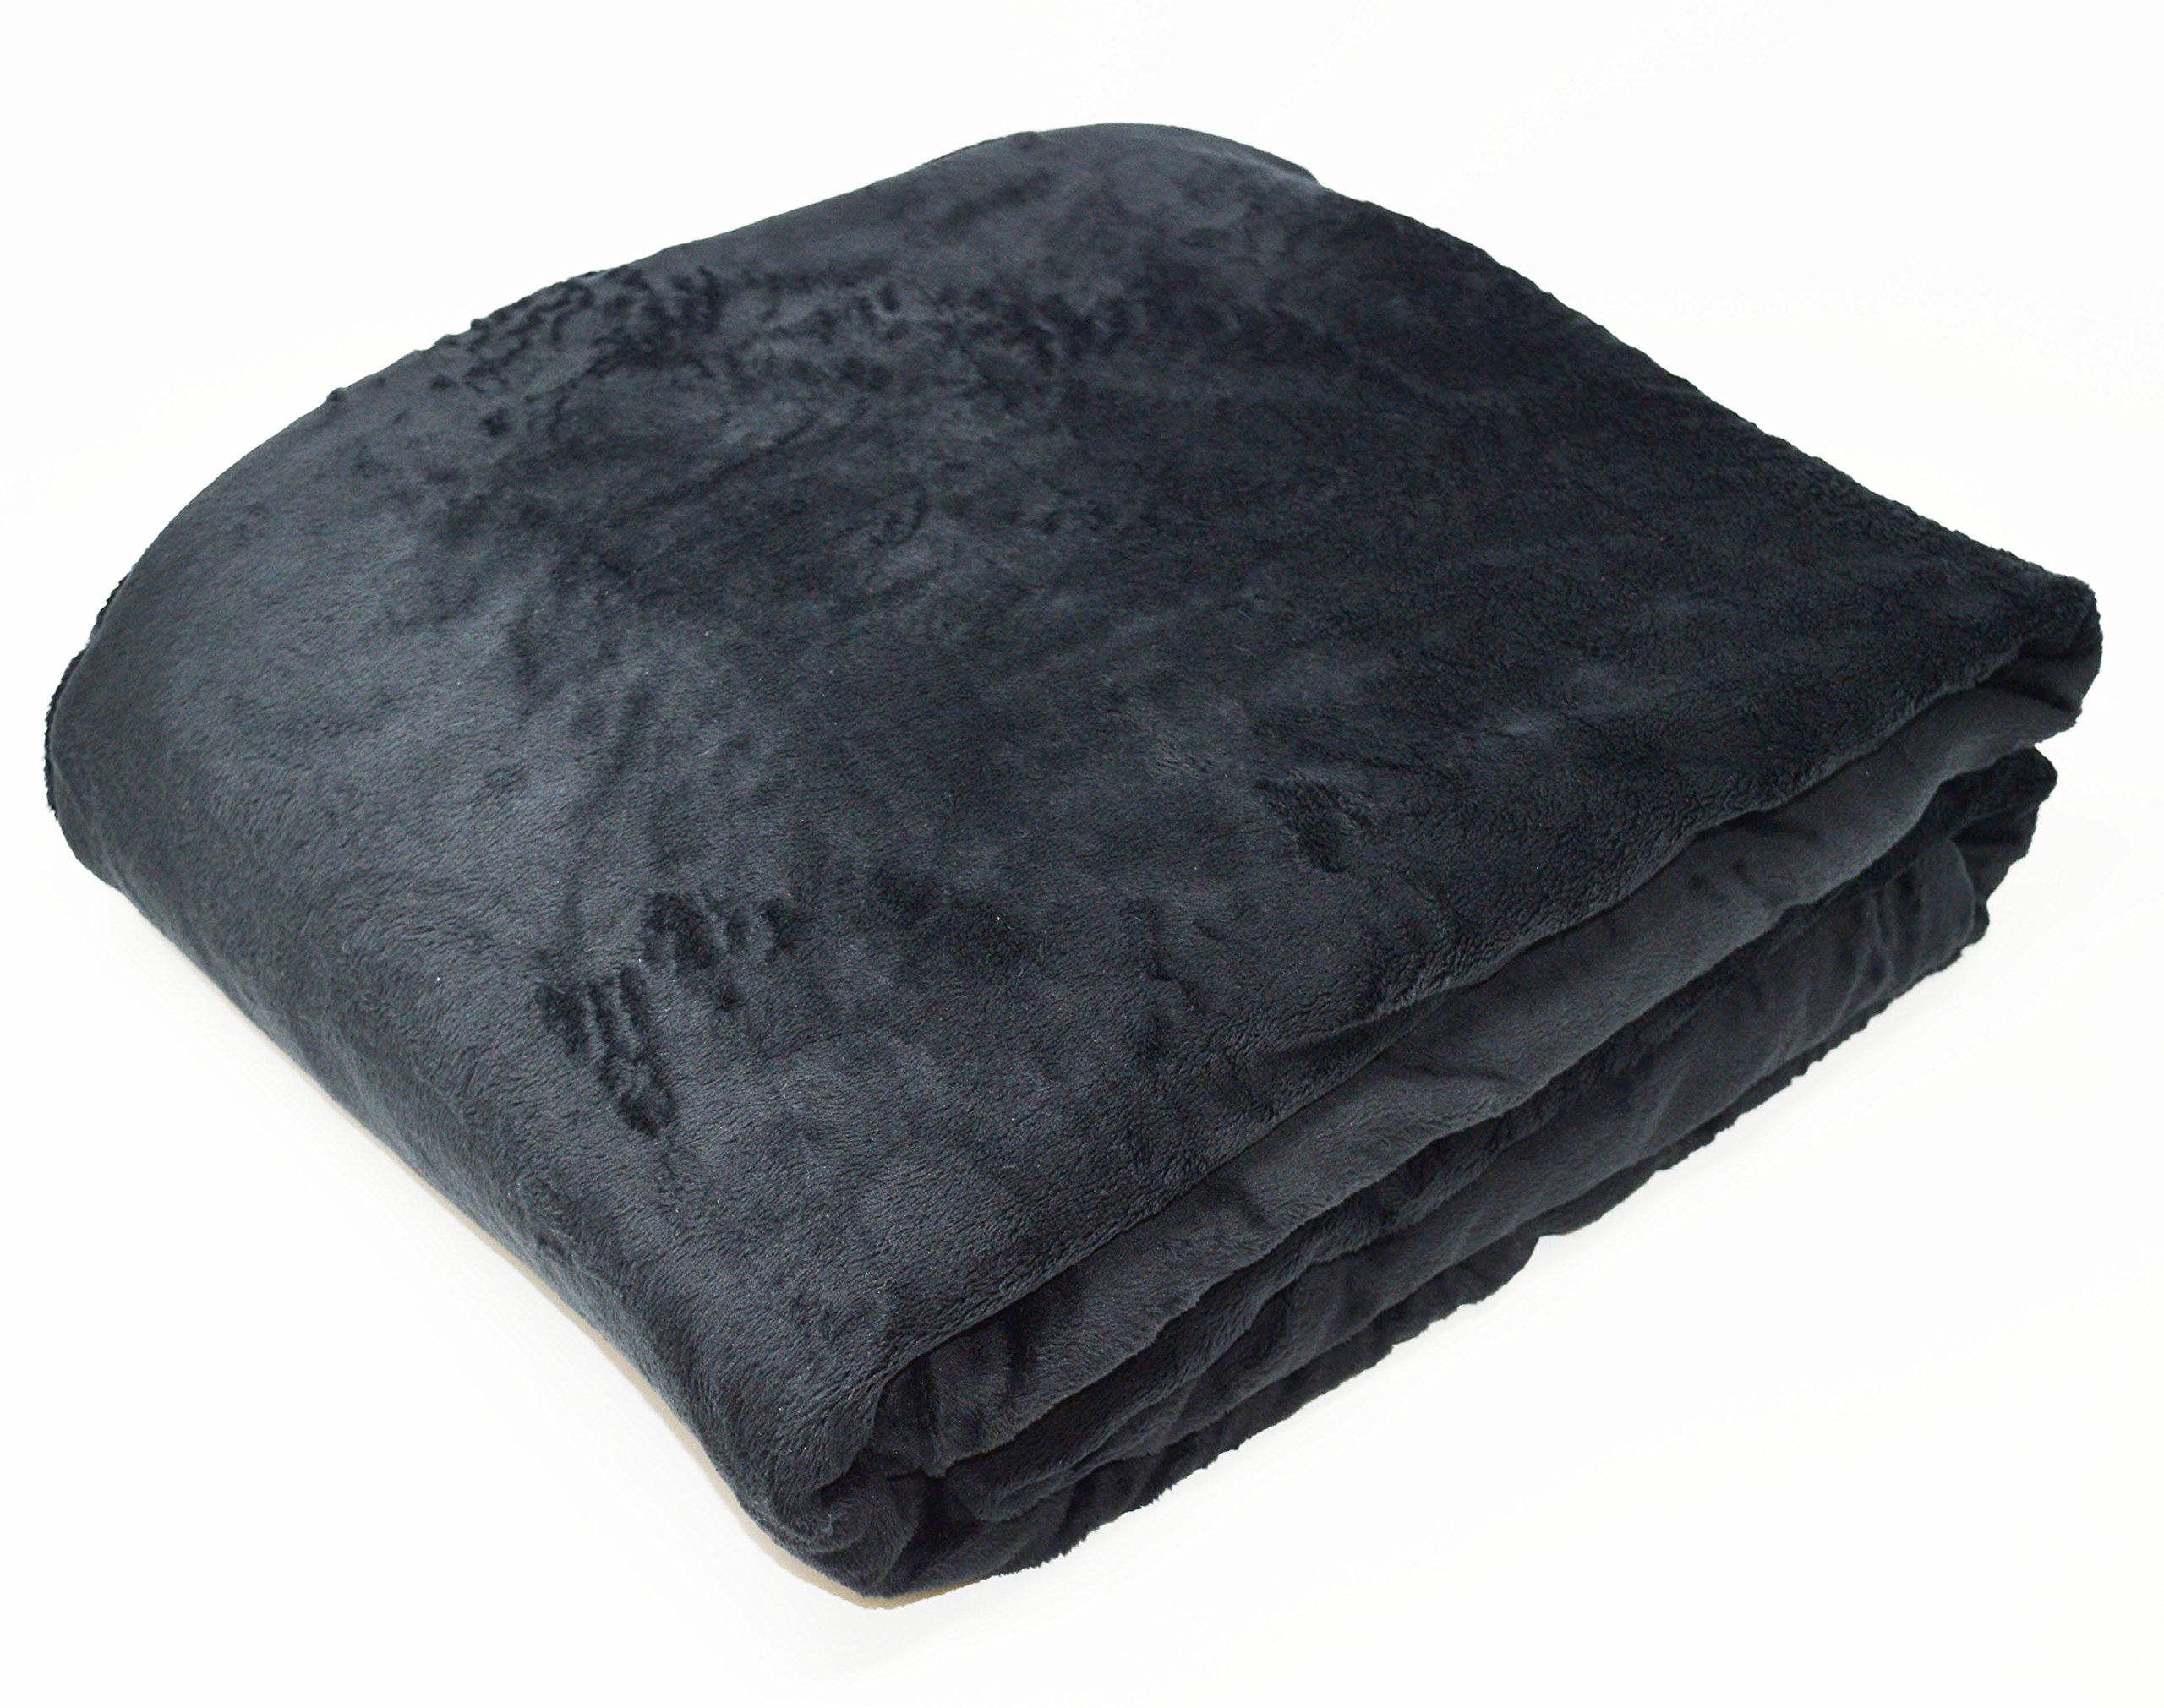 "KF Fabric Weighted Blankets Made in America (7lbs, 48""x30"") Black - Made with Softee Plush Fabric – Improve Your Sleep, Improve Your Life. Helps Calm You so You can Rest and Fall Asleep. by KF Fabric (Image #1)"